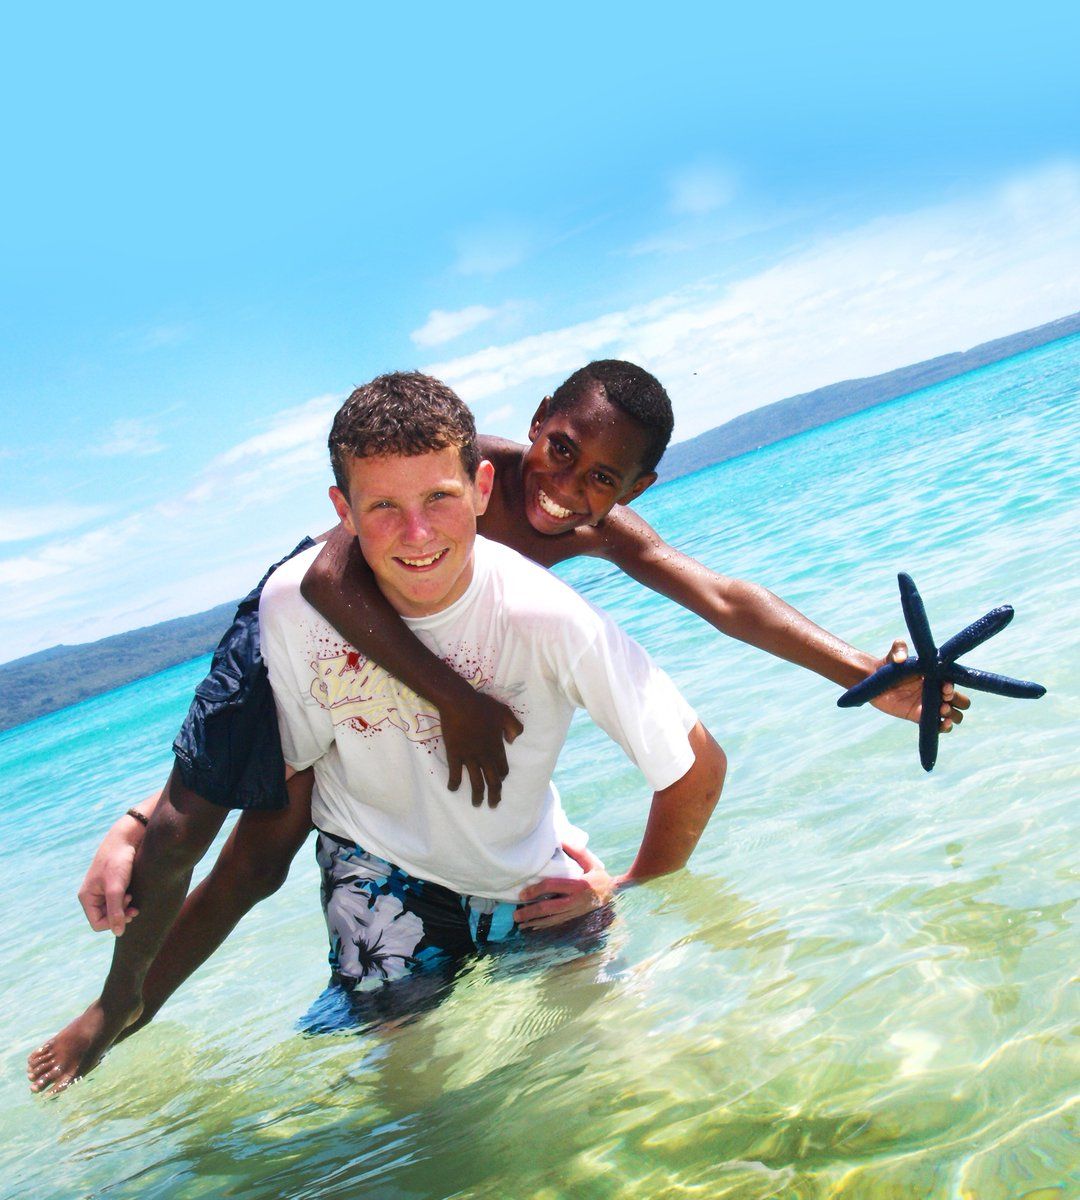 Islands, islands everywhere! But how to make the most of them? 🤔Here's how to get the best out of Vanuatu with a week-long getaway - https://t.co/WJ5pL6Yl6K #vanuatu #summersun #weekholiday #islandtime #letsvanuatu https://t.co/2olgXstROQ